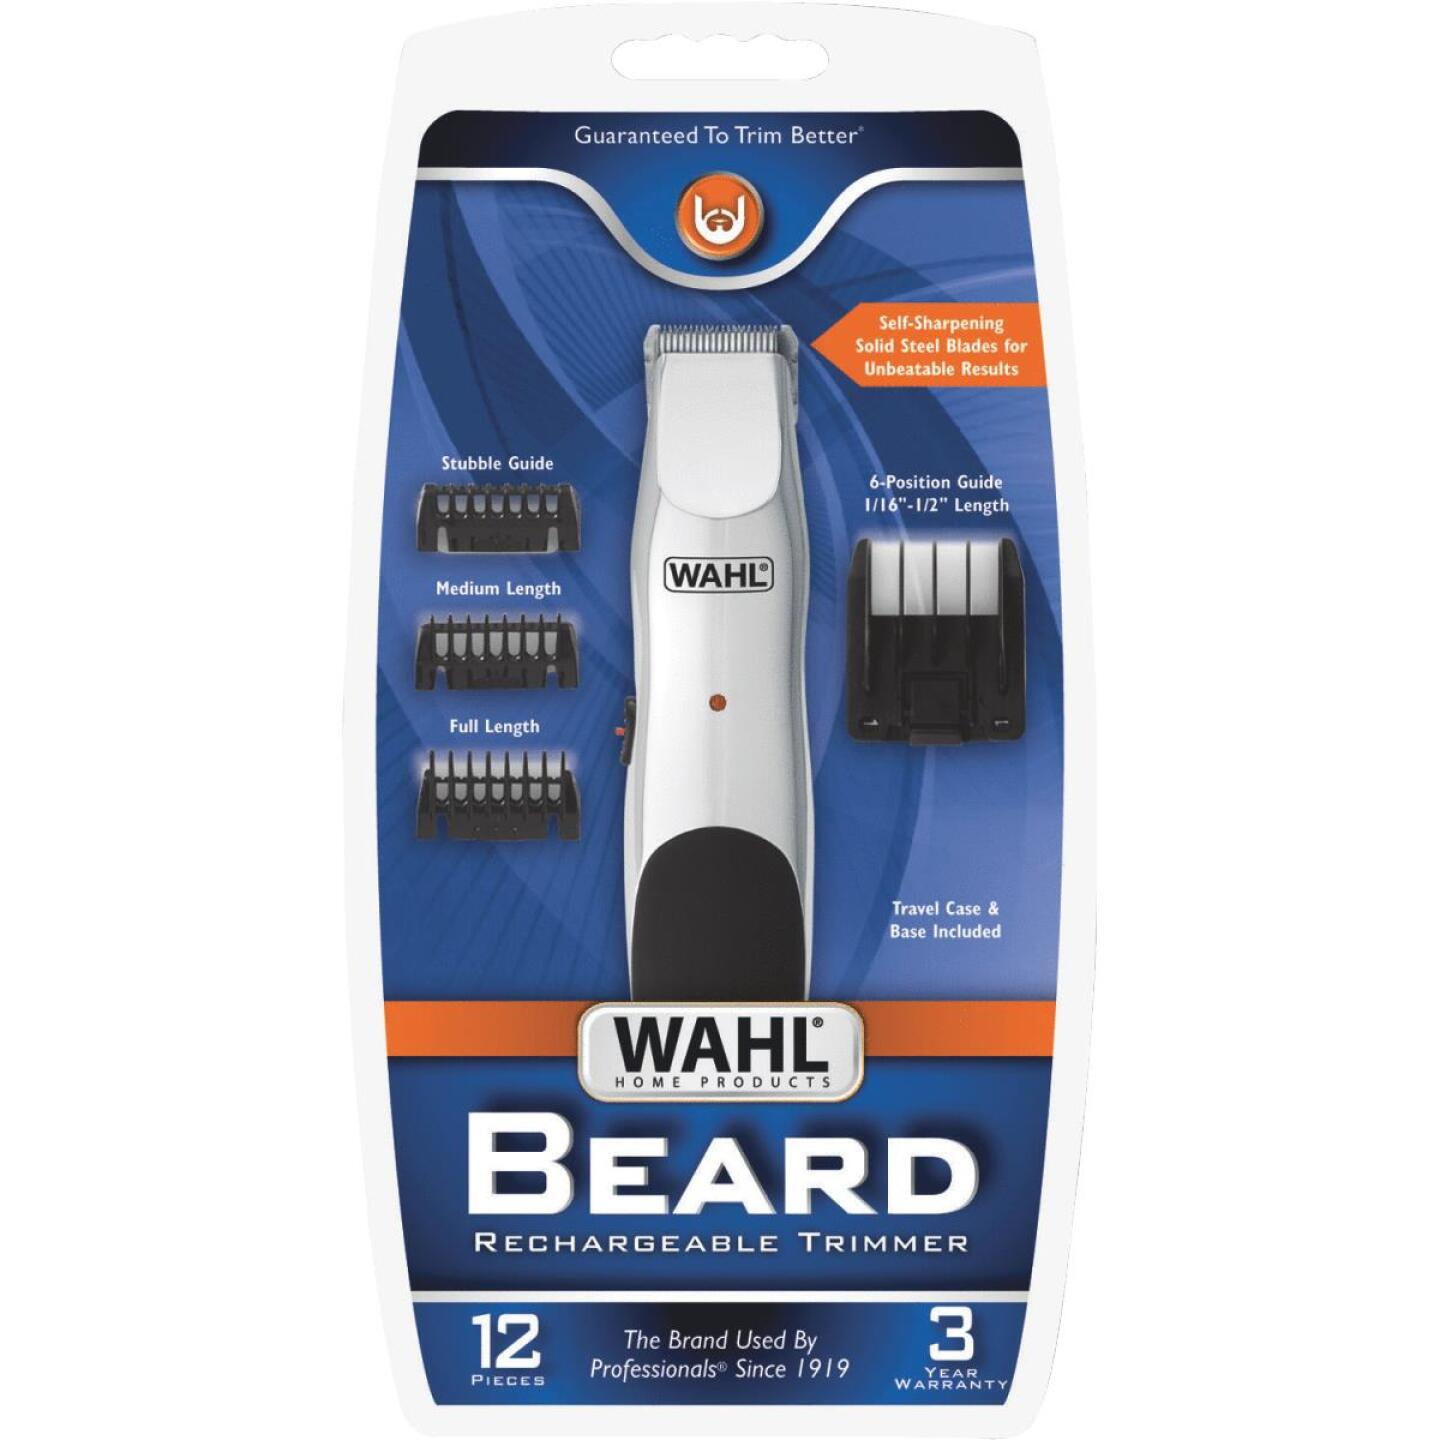 Wahl Rechargeable Beard Trimmer/Groomer Image 2